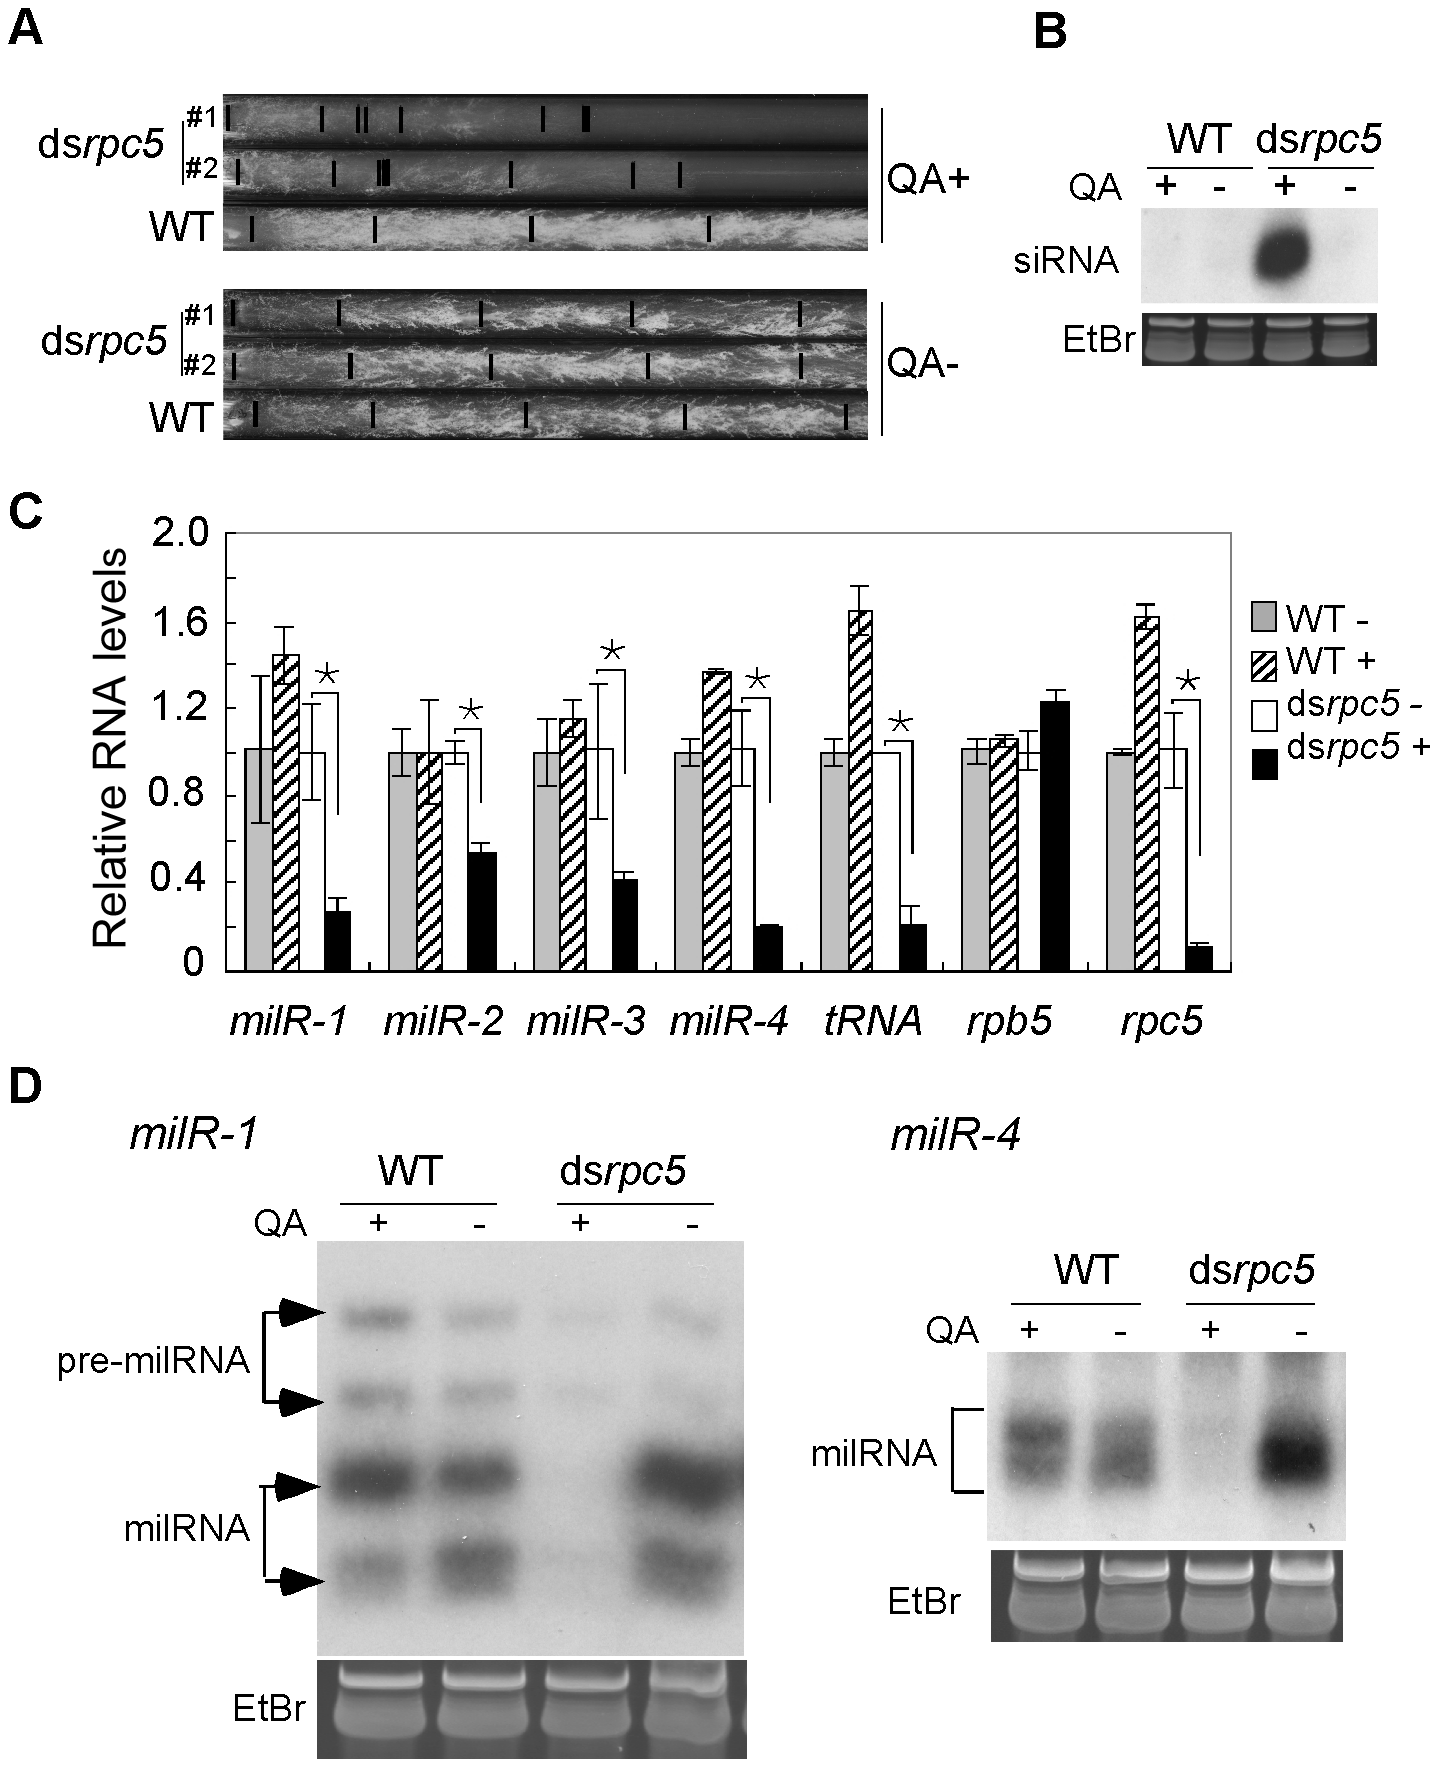 Pol III knockdown results in the reduction of milRNA expression.